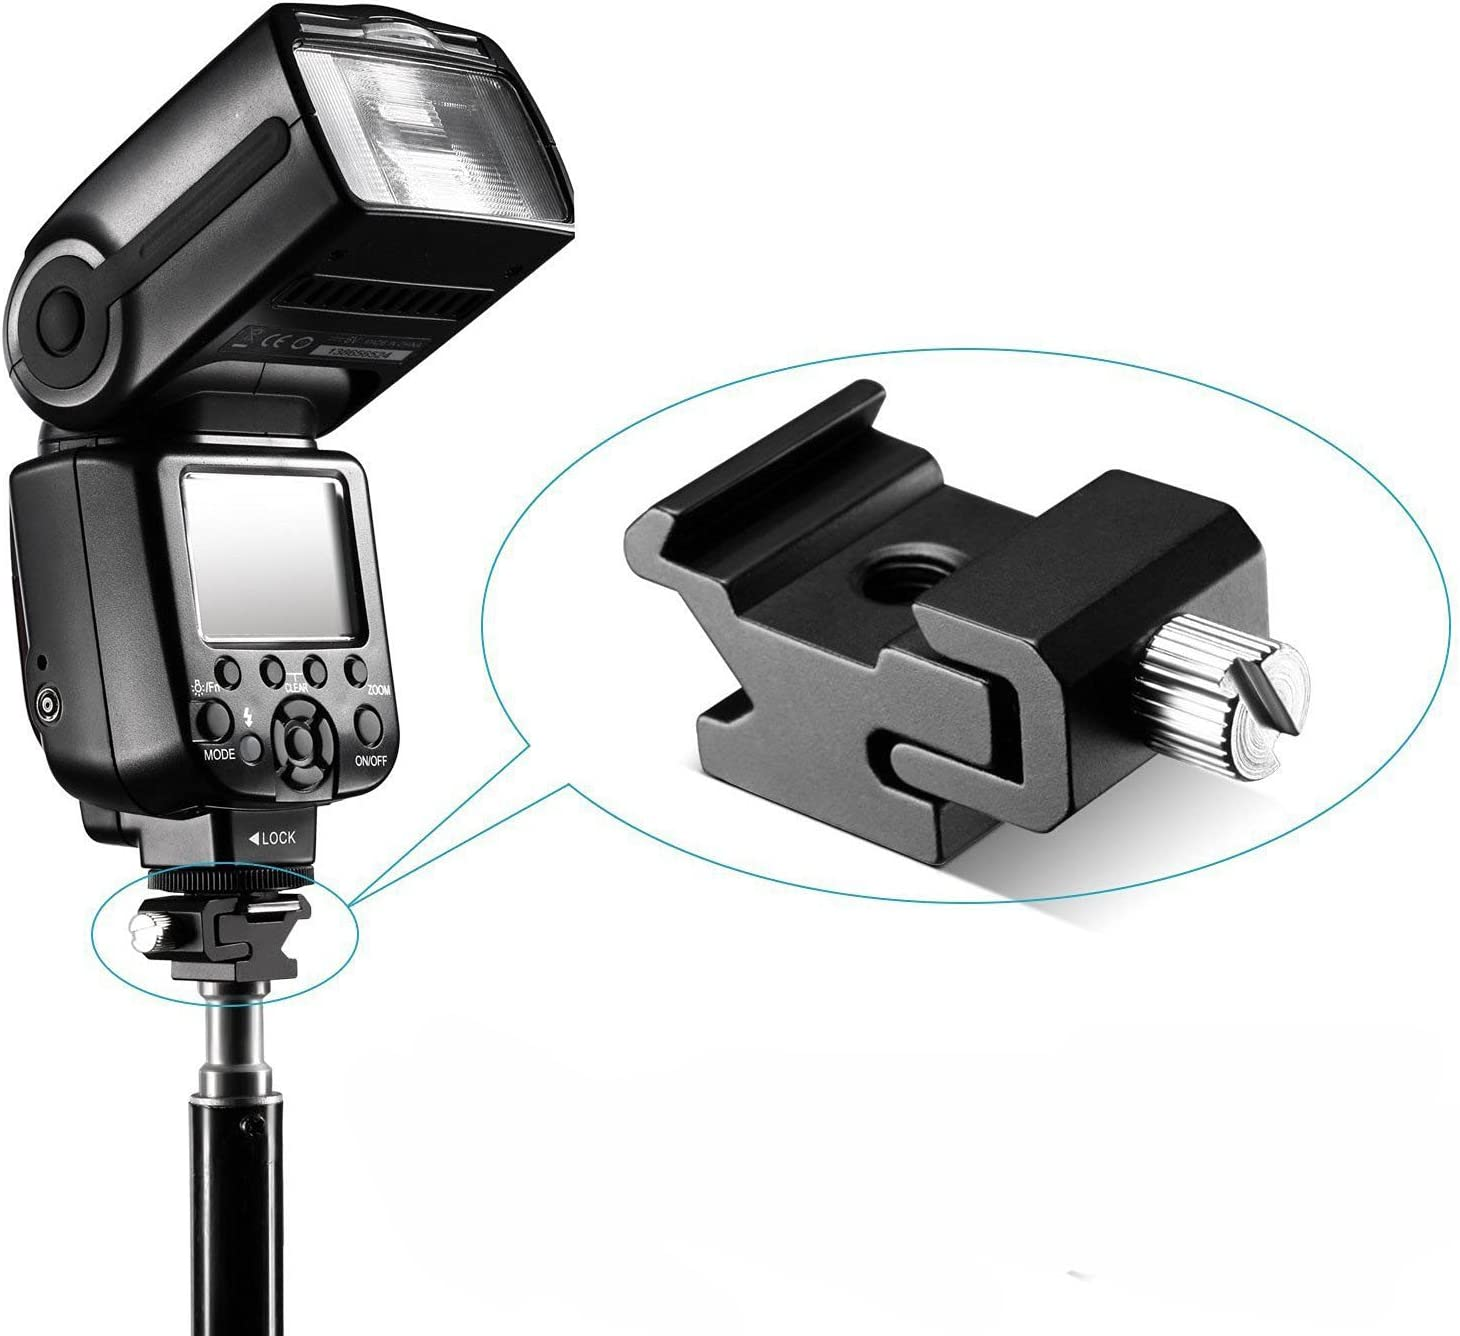 RivenAn 2Pcs Hot Shoe Flash to Bracket Stand Mount Adapter Trigger with 1//4 Female Thread